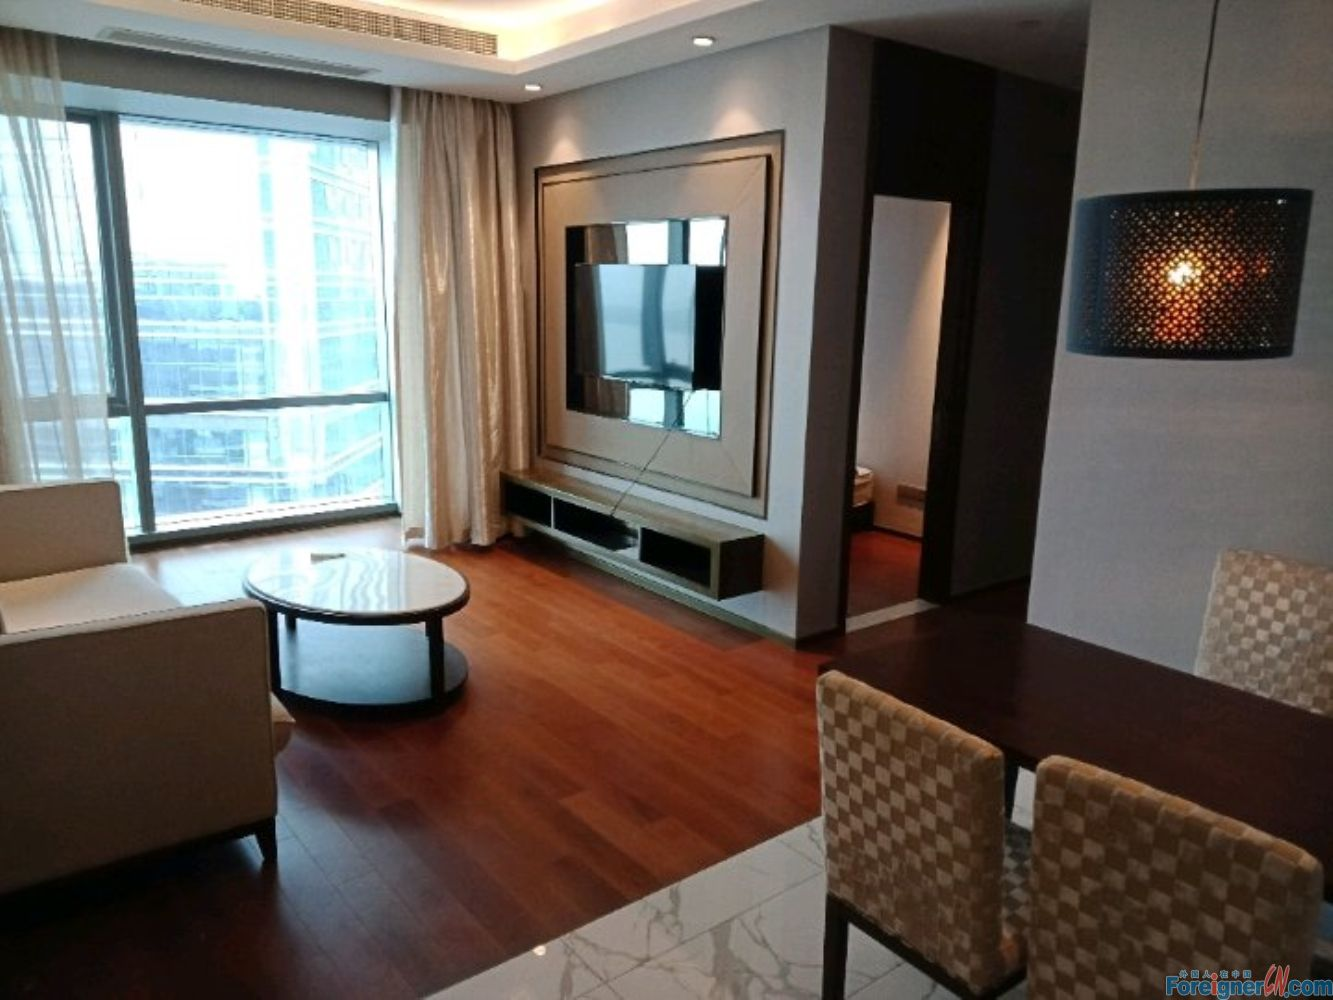 Find an apt in Suzhou-Times Square-lake view-2 bdrs–elegant decoration-high floor-cozy- central AC-convenient traffic